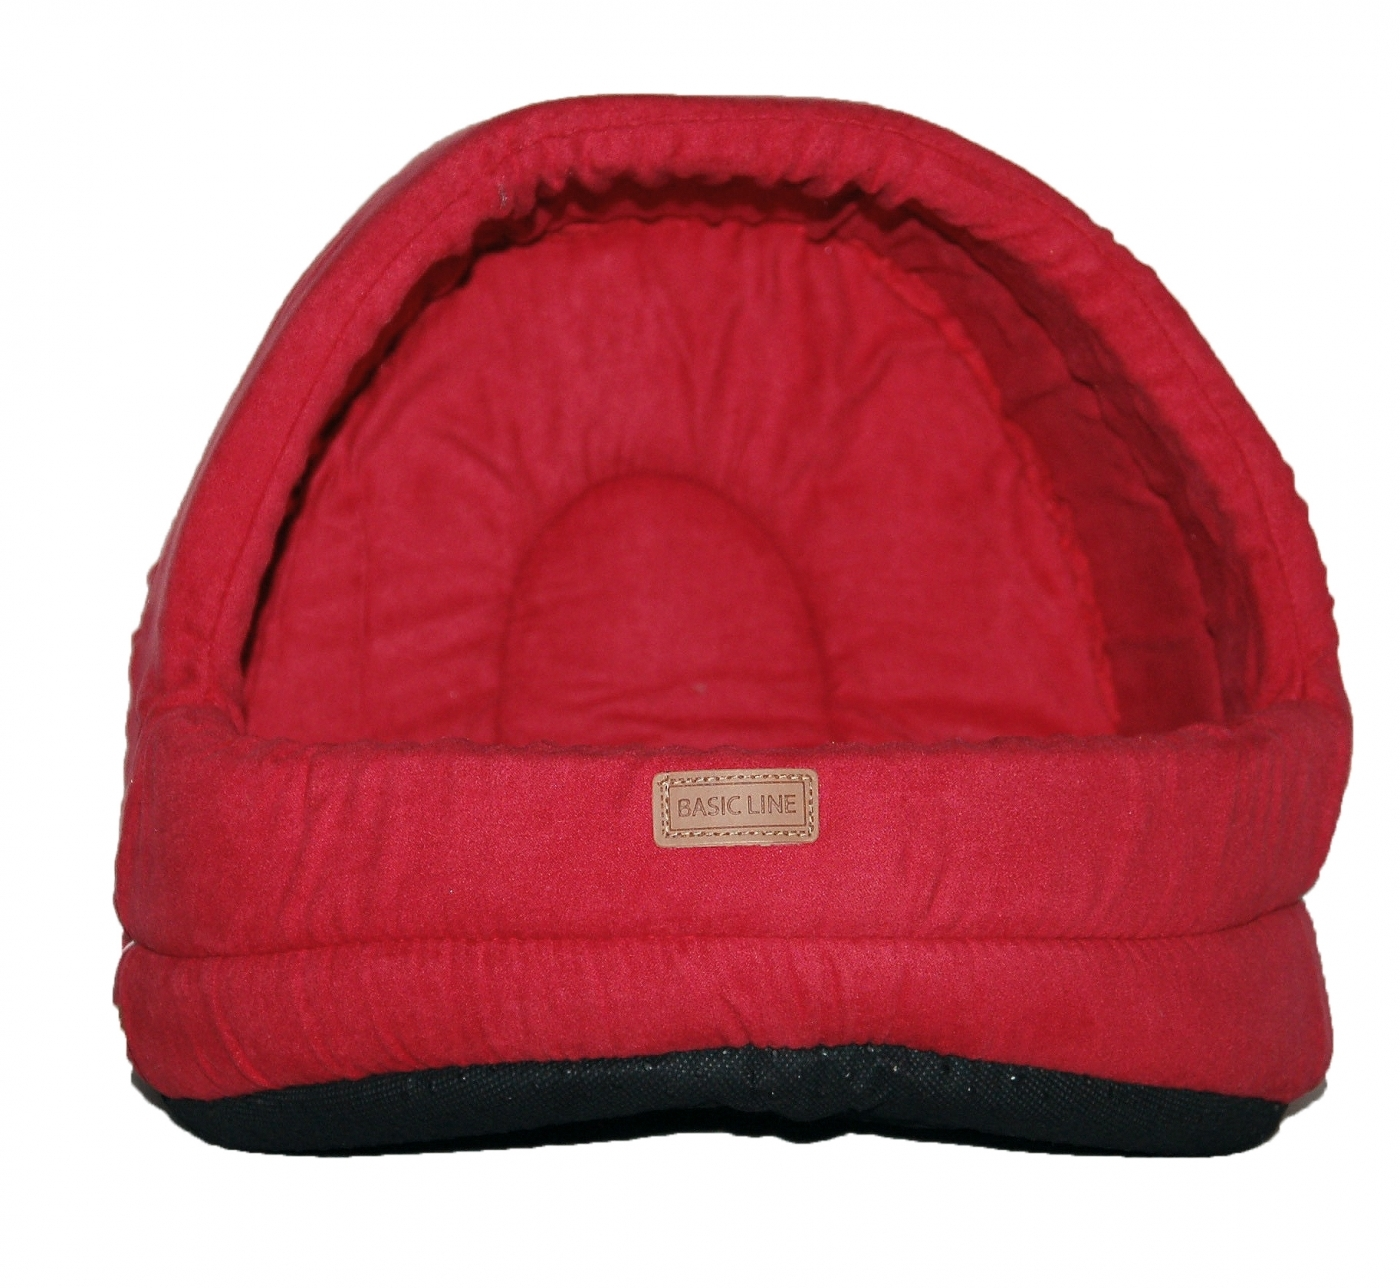 CAPAZO SUEDE DOME BASIC LINE CAT ROJO